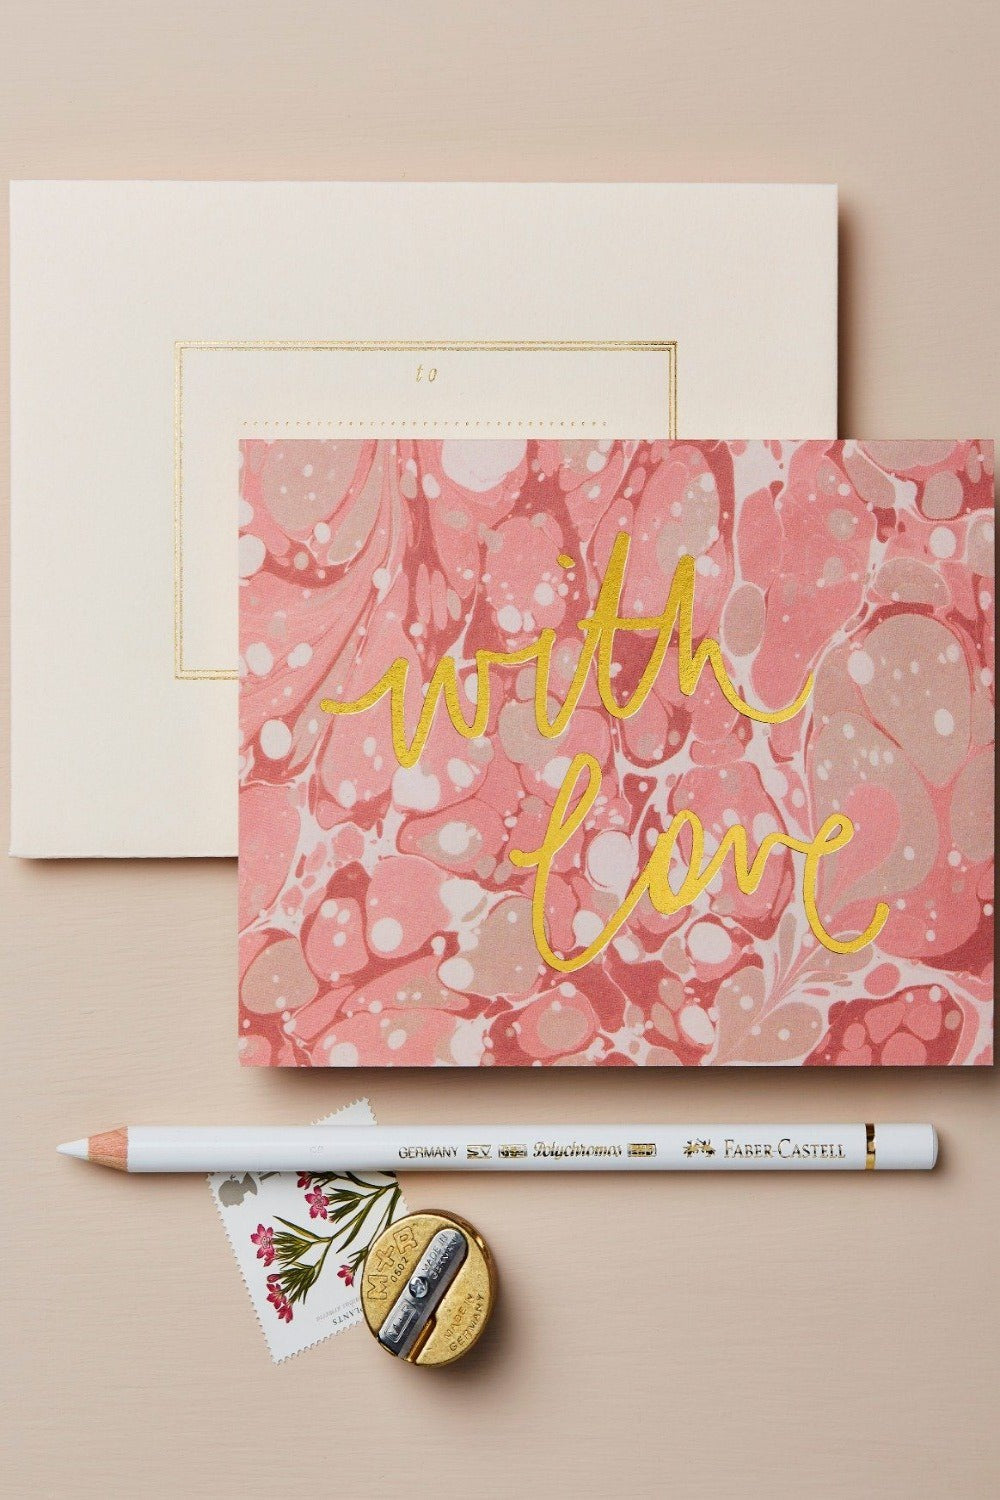 Wanderlust Card - Marble With Love Gifts & Stationery Wanderlust